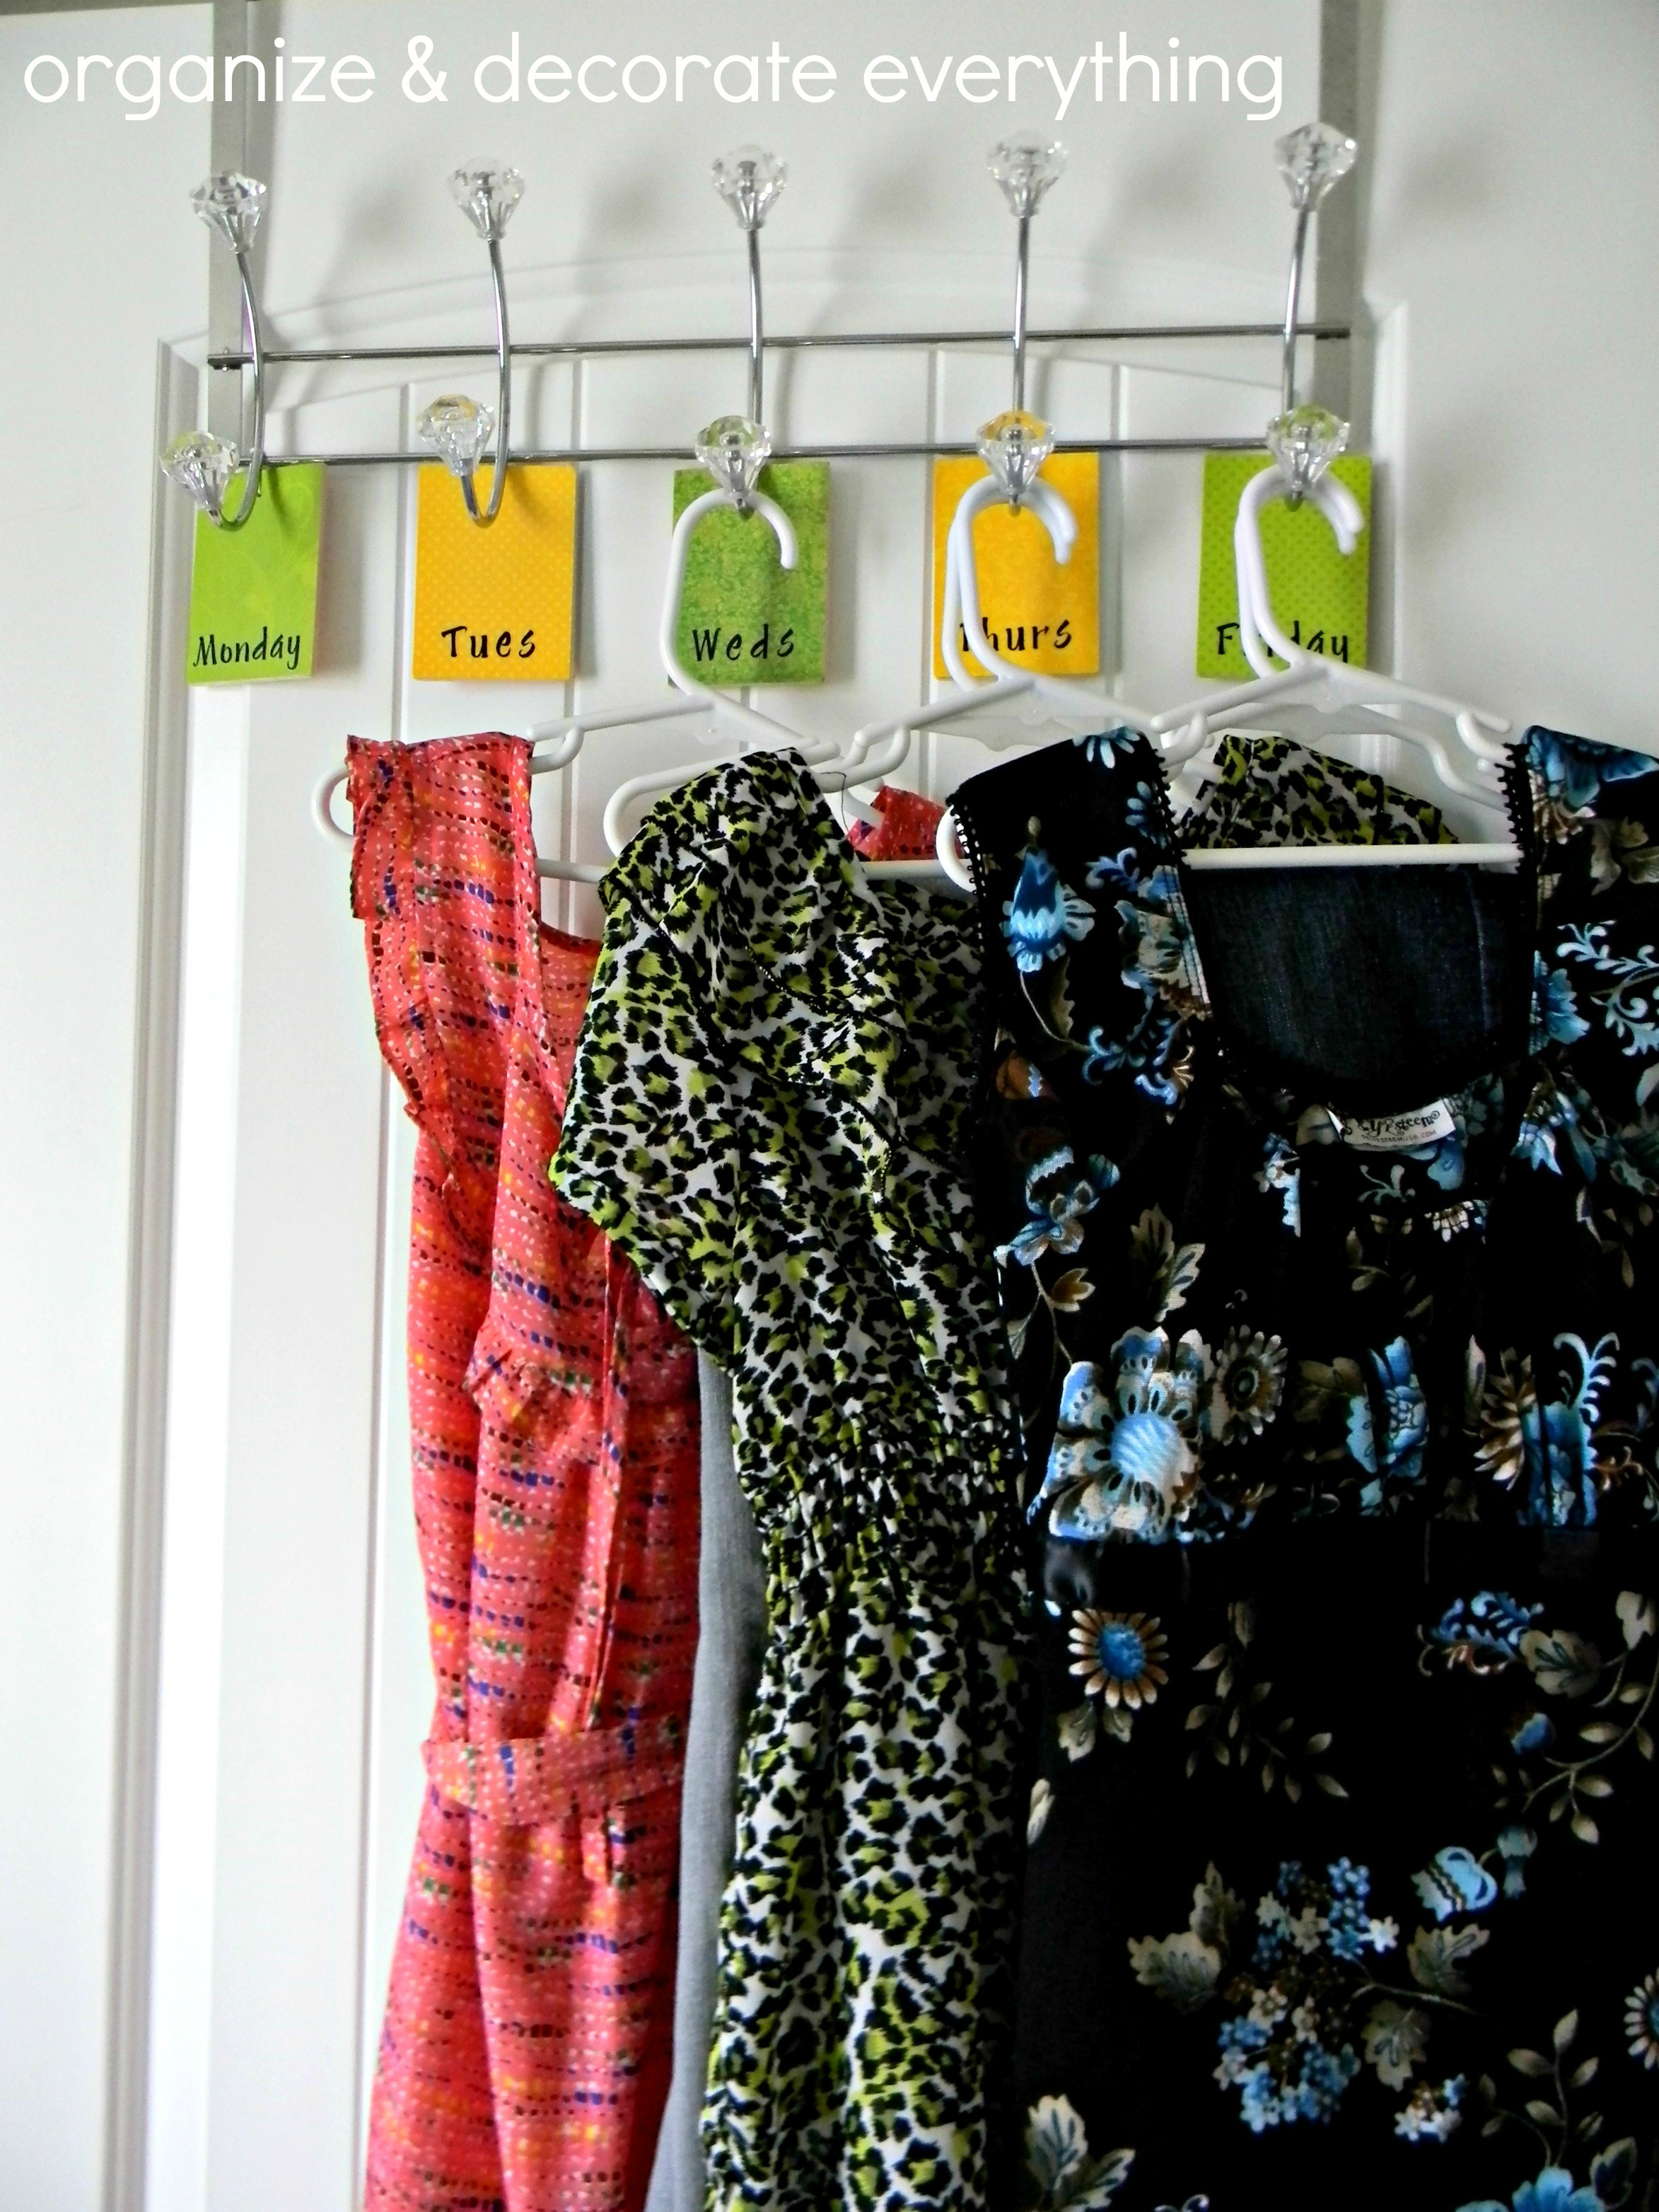 20 Crafts To Make Organizing Easier Organize And